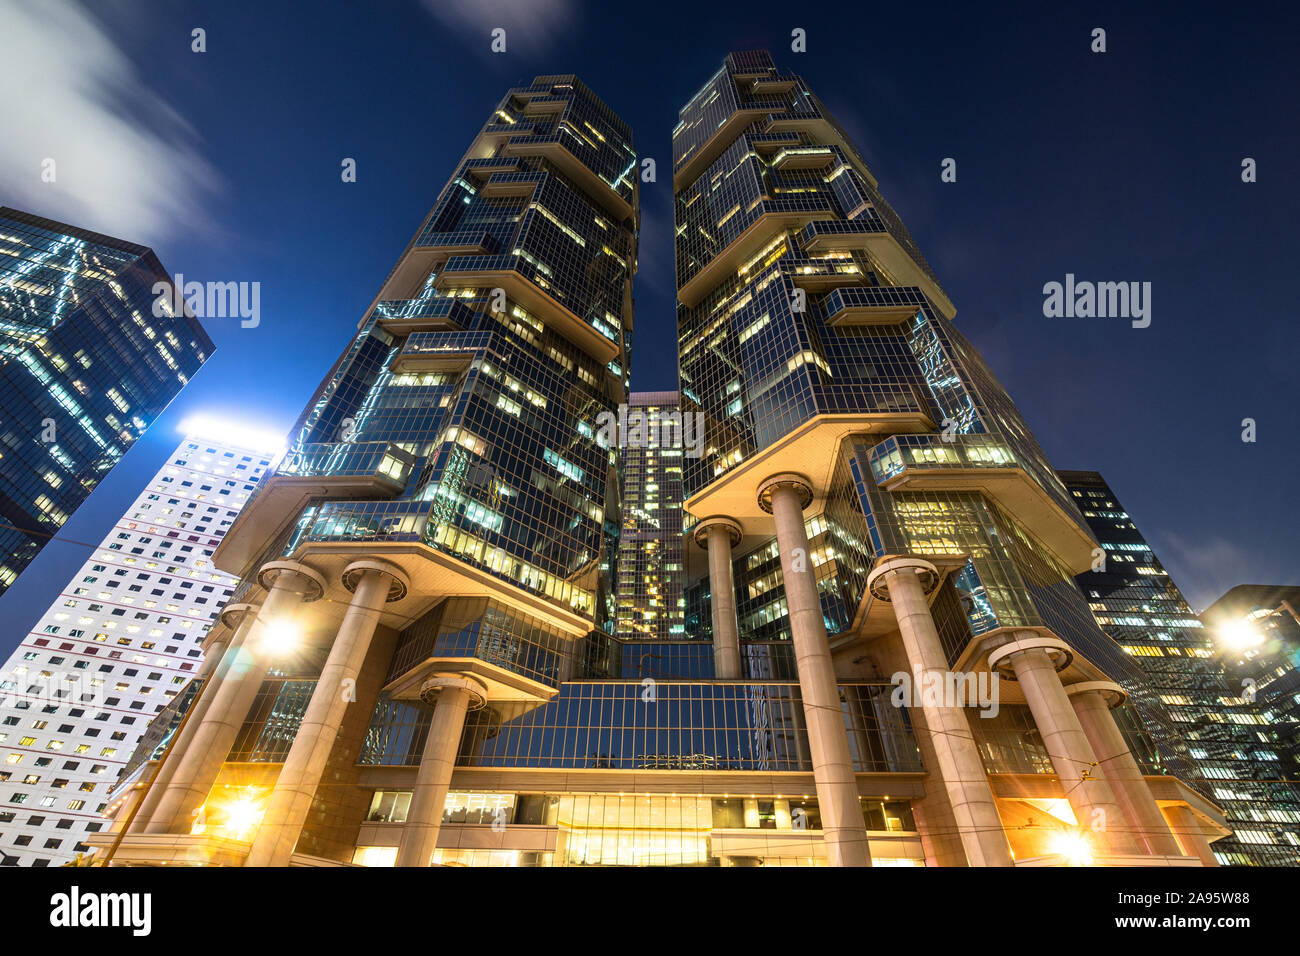 Low angle view of modern skyscrapers in the Central business district in Hong Kong island at night in Hong Kong SAR, China Stock Photo